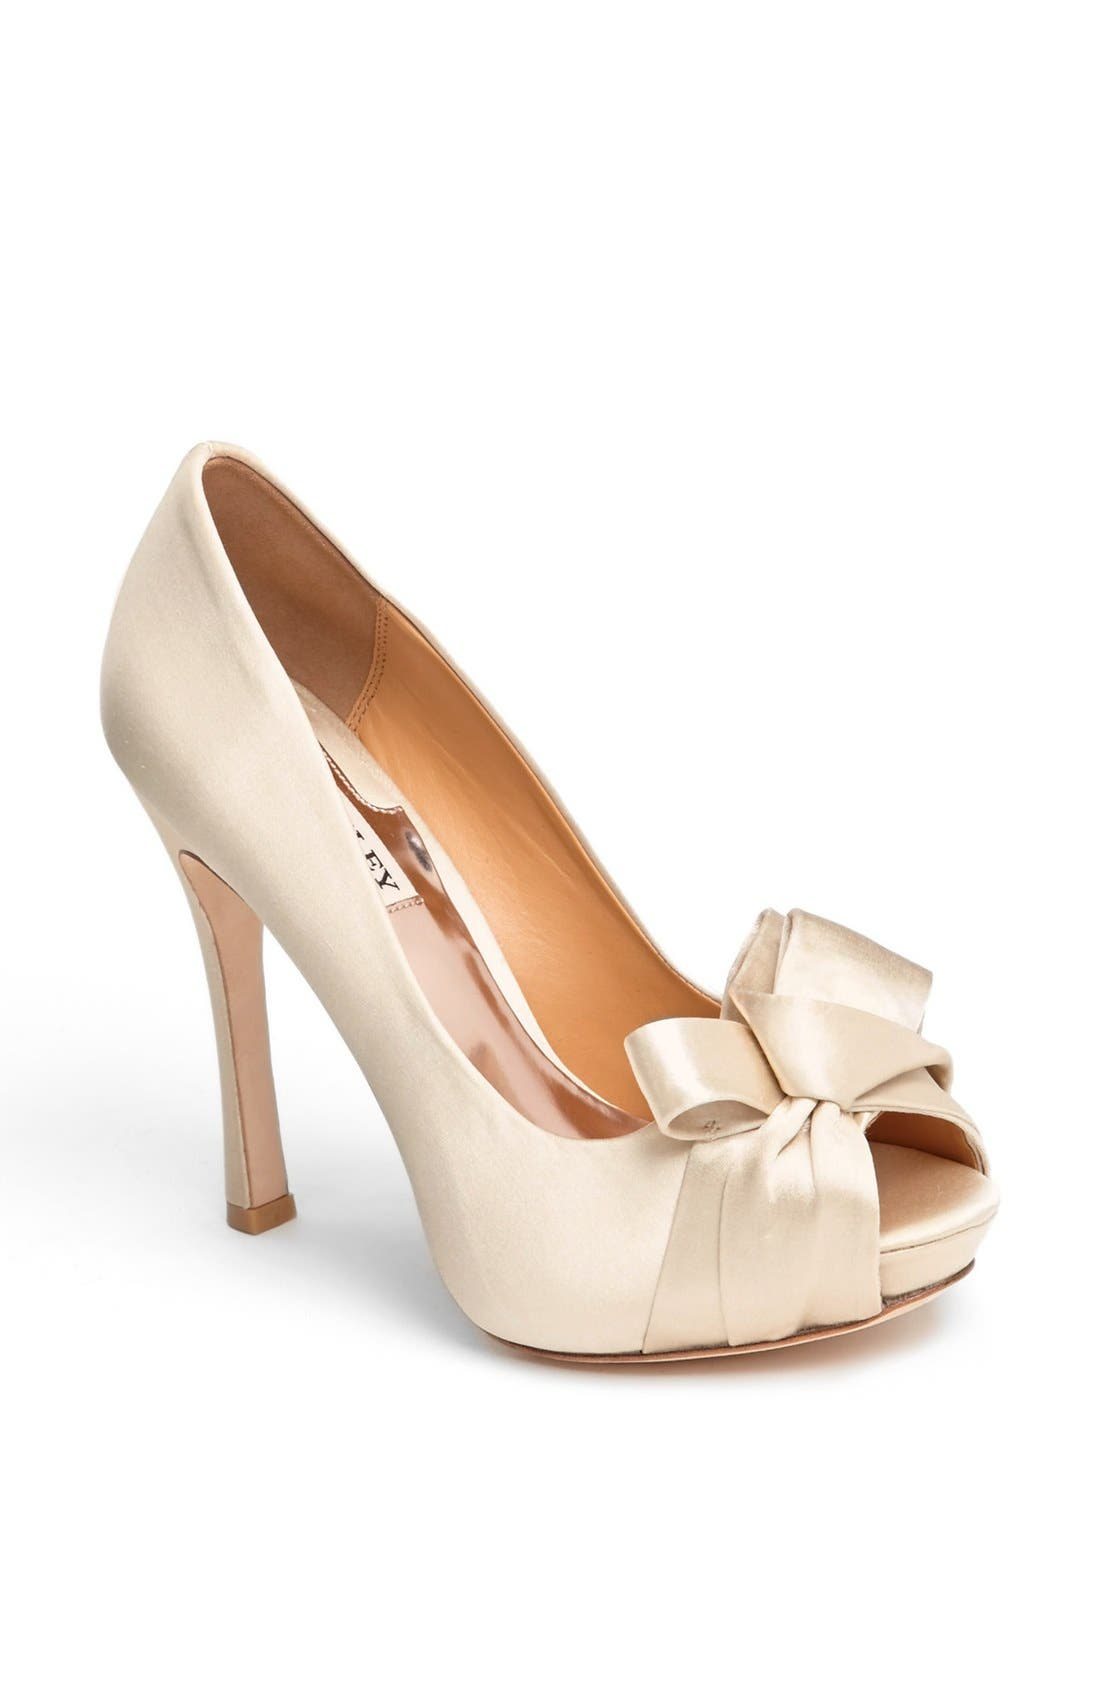 Alternate Image 1 Selected - Badgley Mischka 'Pasquel' Pump